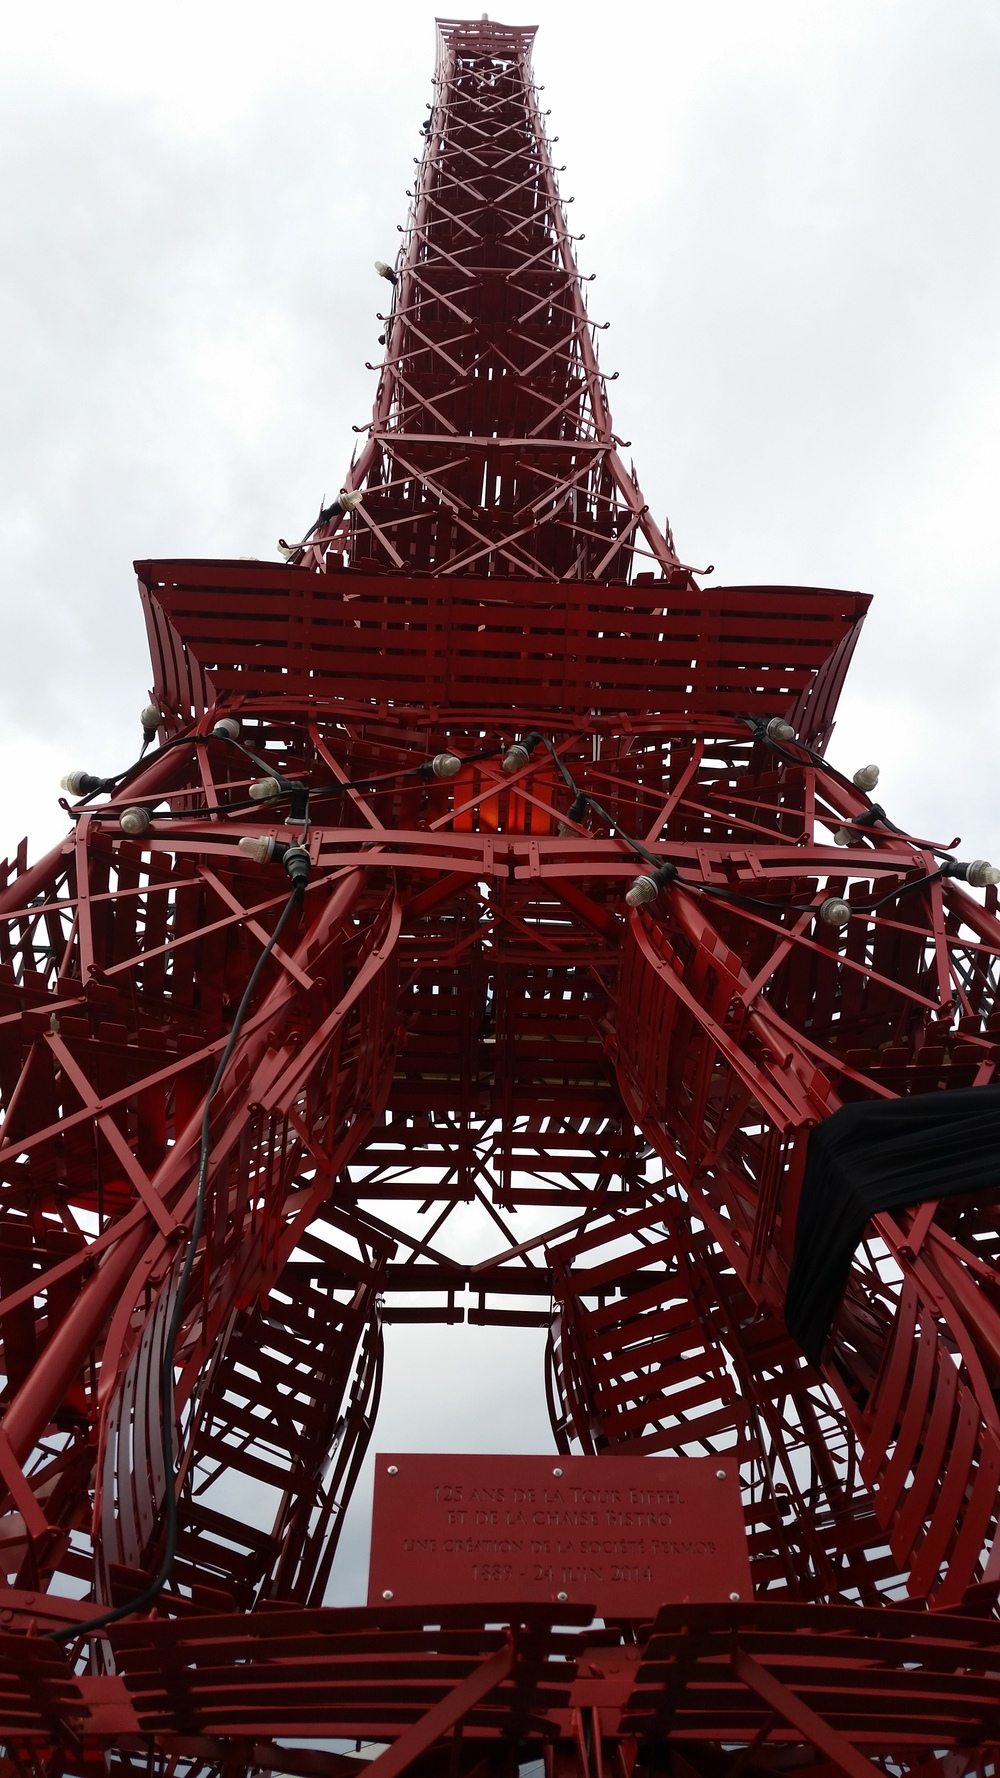 A replica of the Eiffel Tower made from bistro chairs stands at the COP 21 conference venue.  Photo: Ryan Stoa.